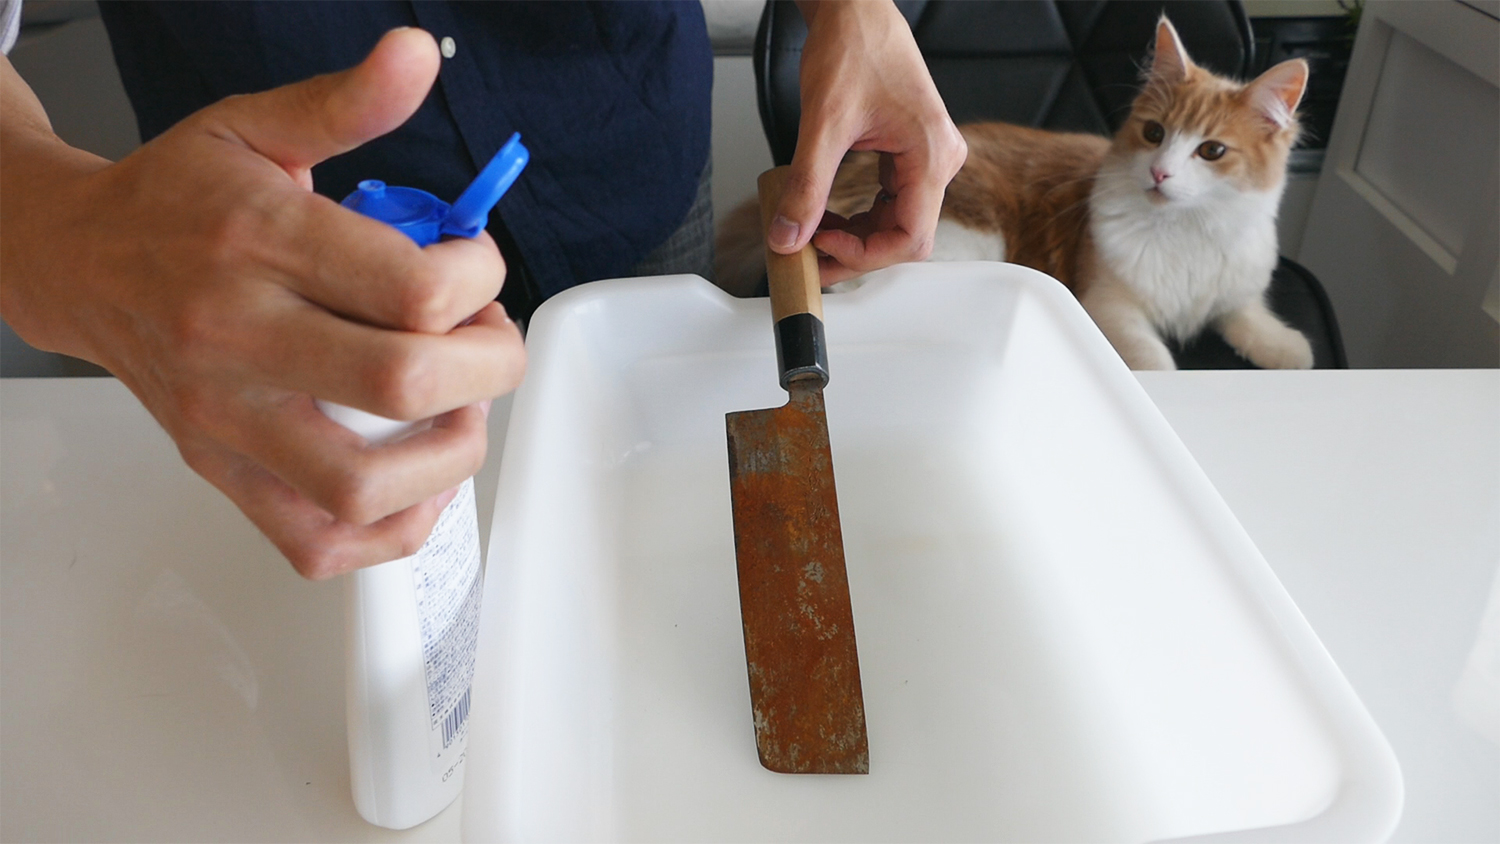 polishing a rusty knife to be good as new